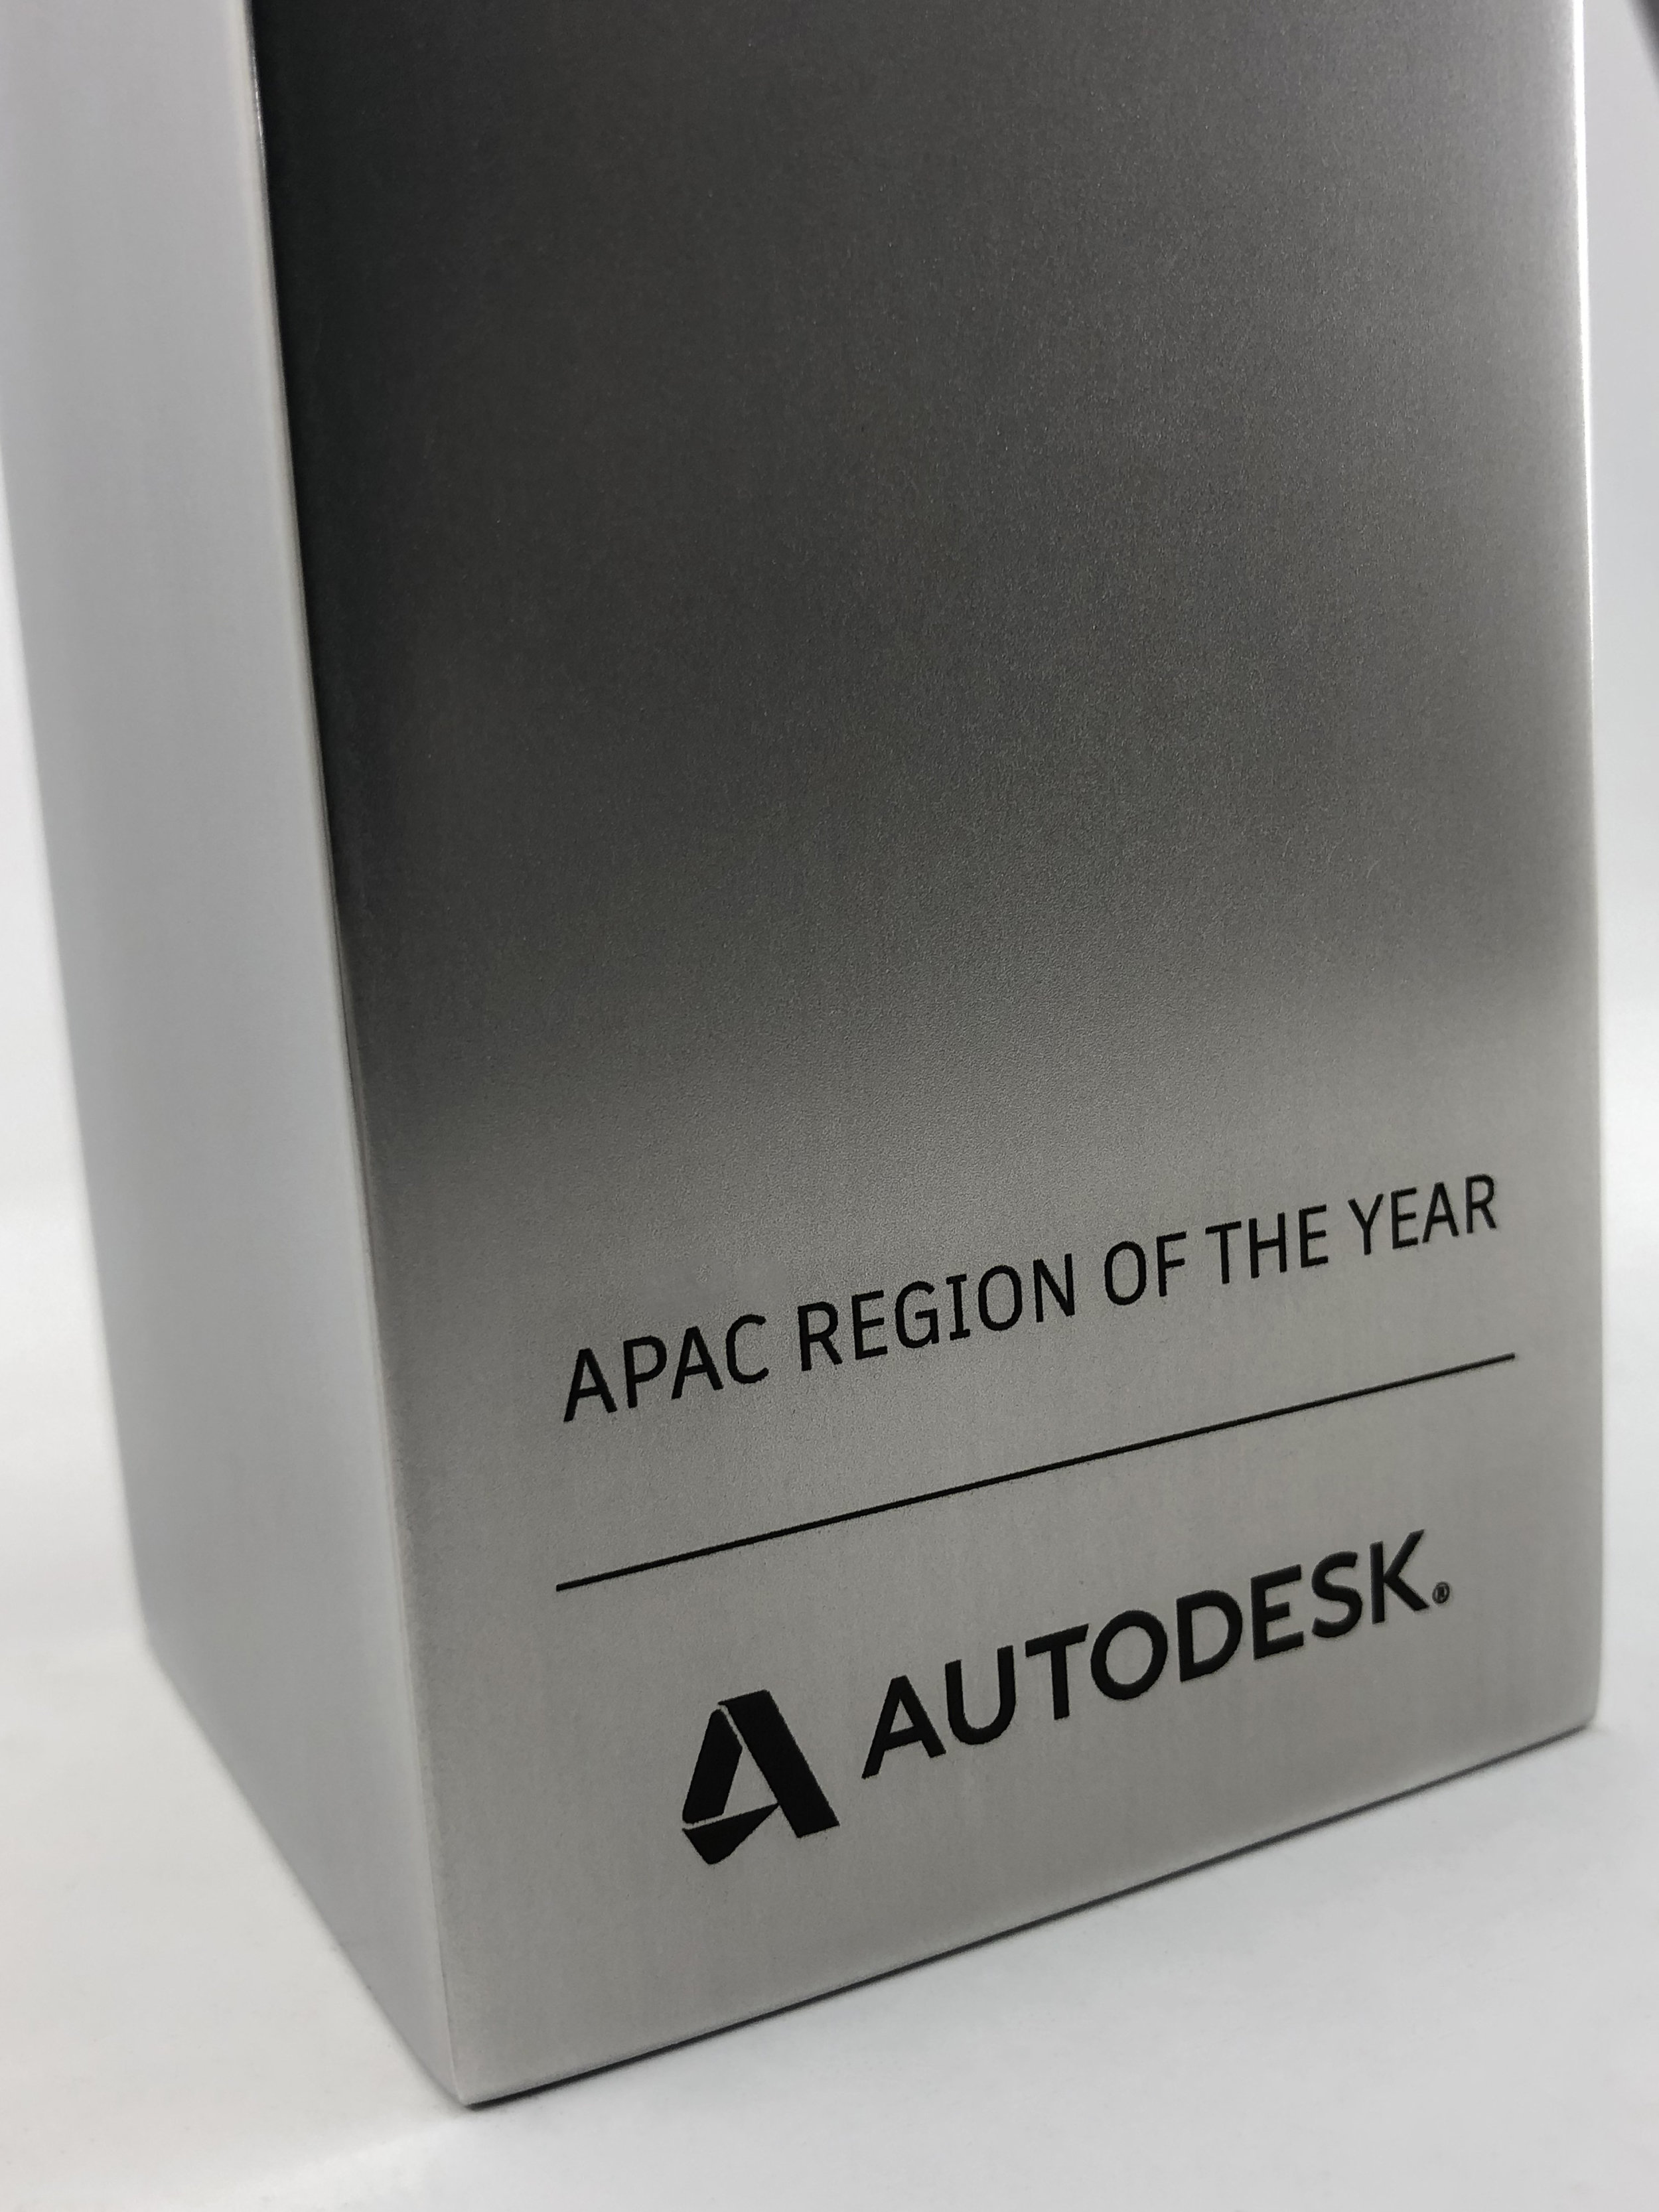 autodesk-apac-excellence-awards-acrylic-metal-graphic-art-print-trophy-10.jpg